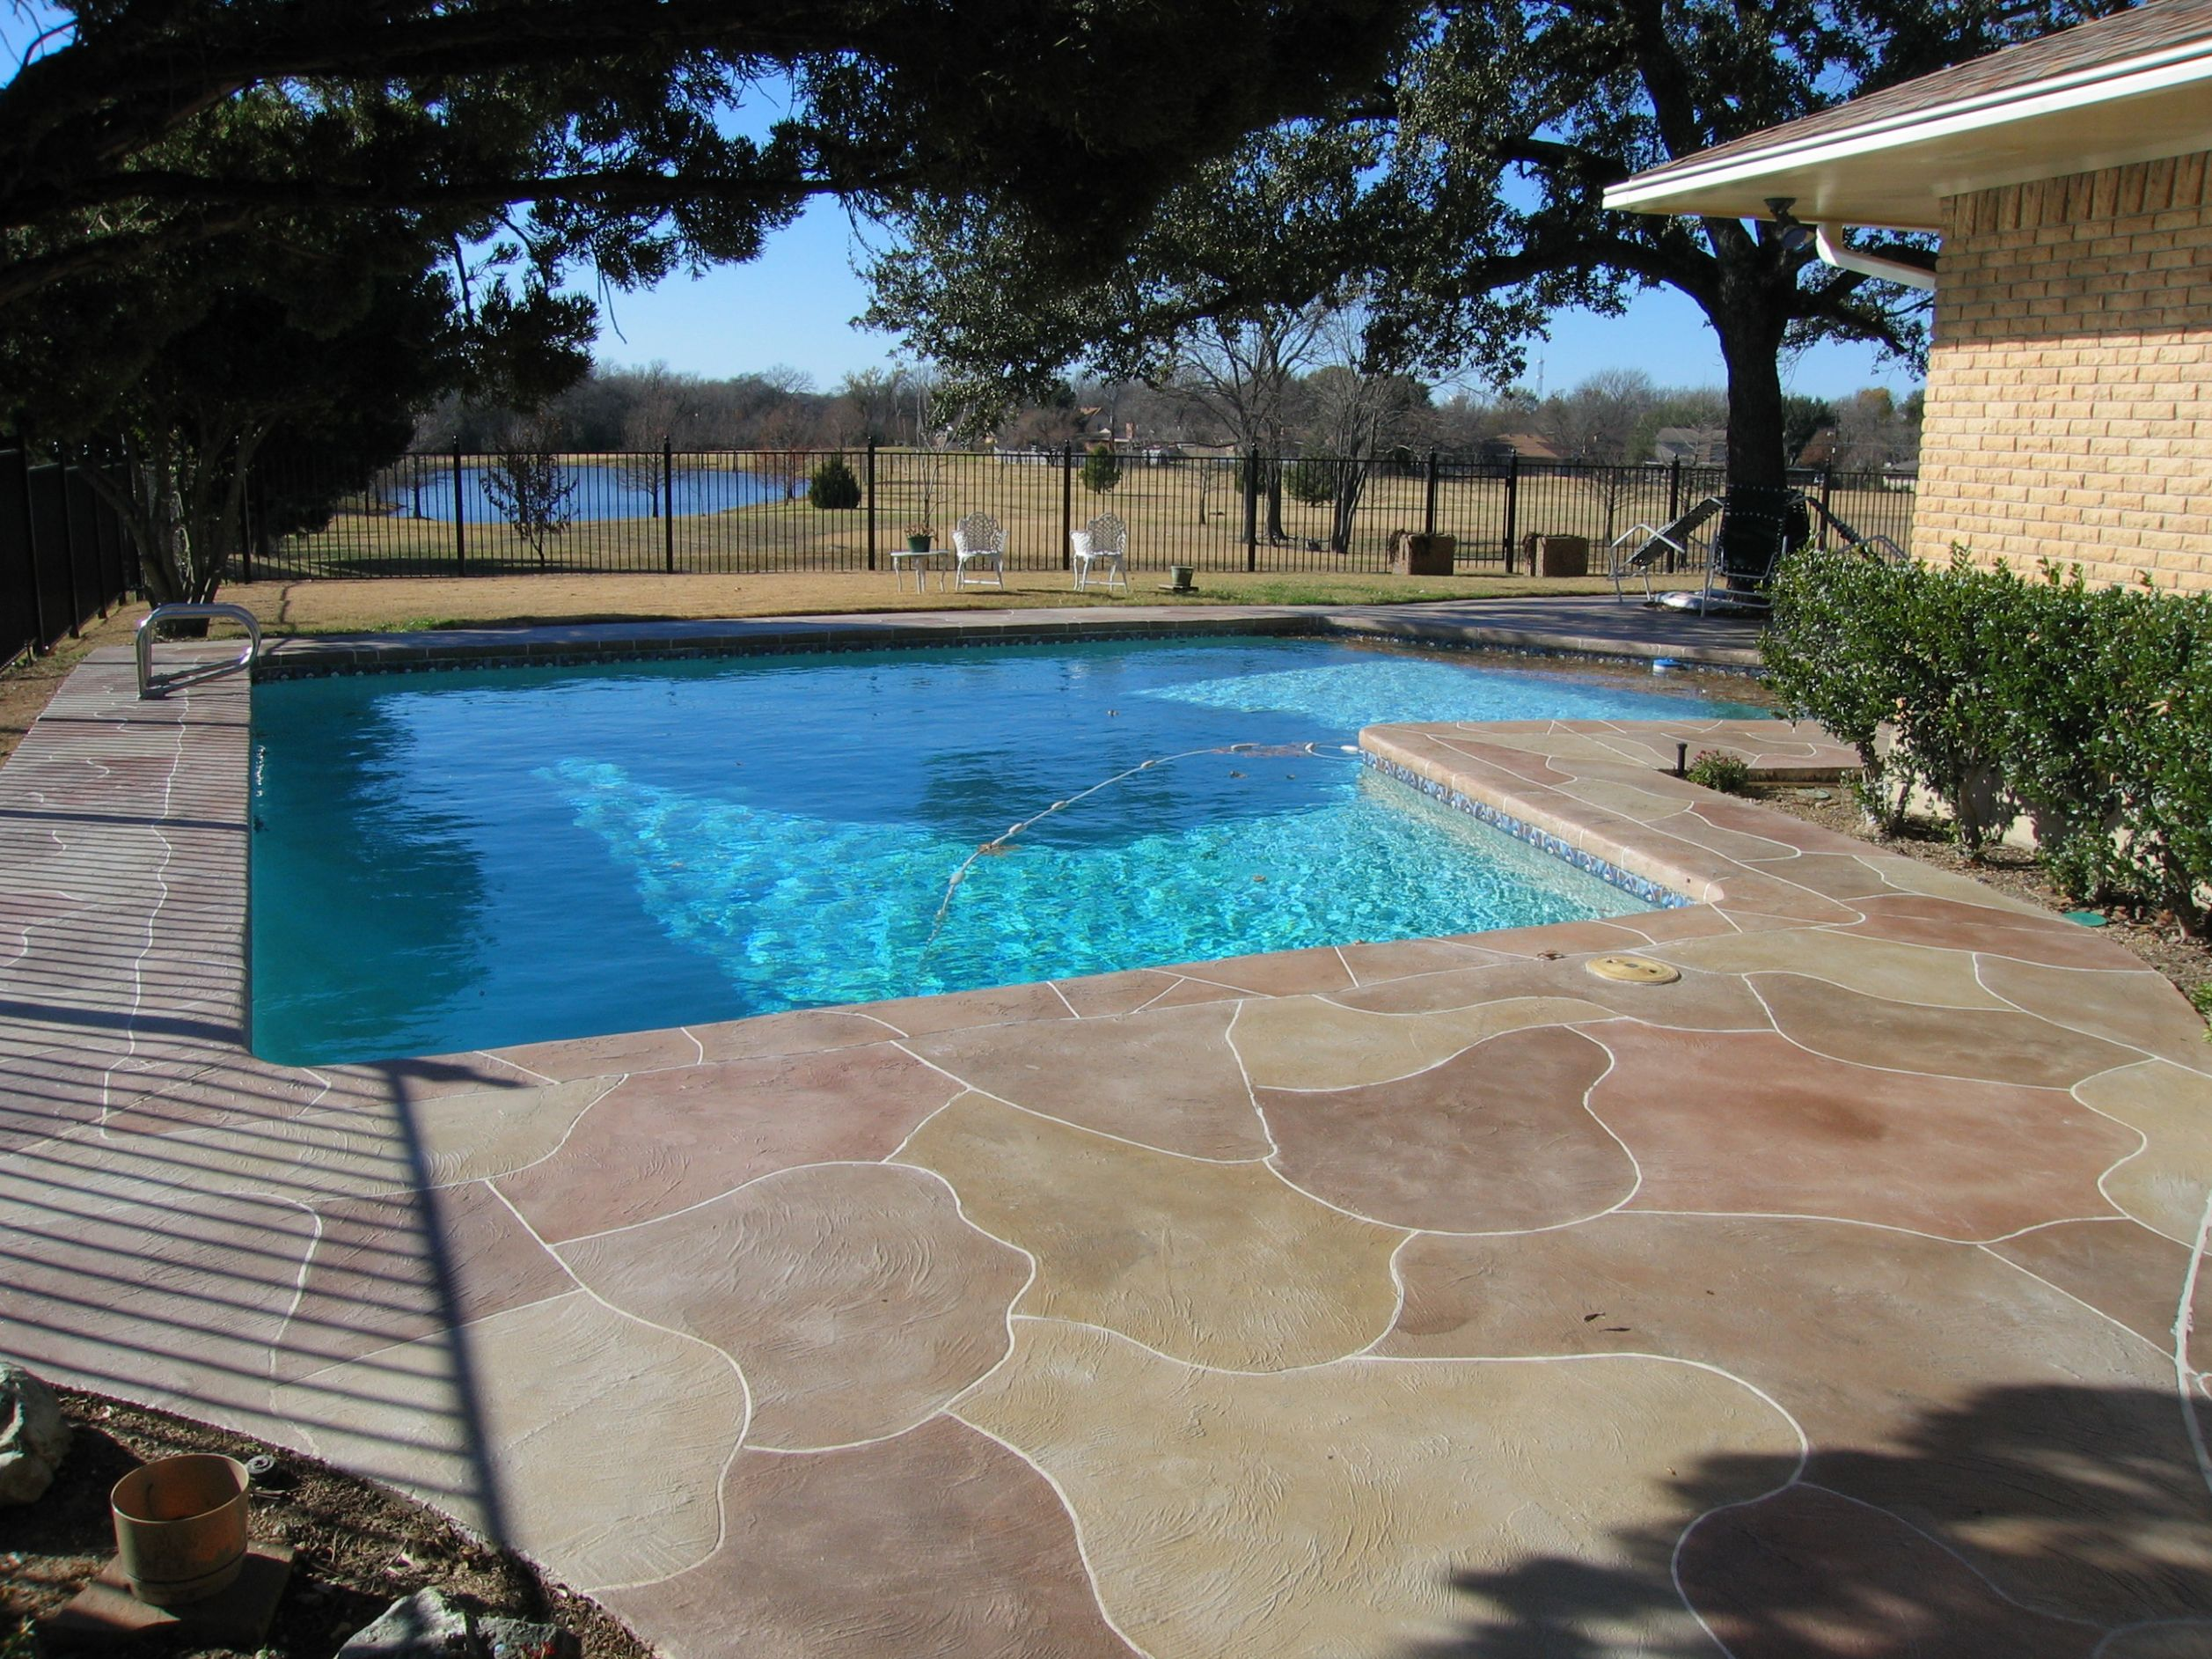 Stamped concrete pool patio designs ideas for stamped concrete ..